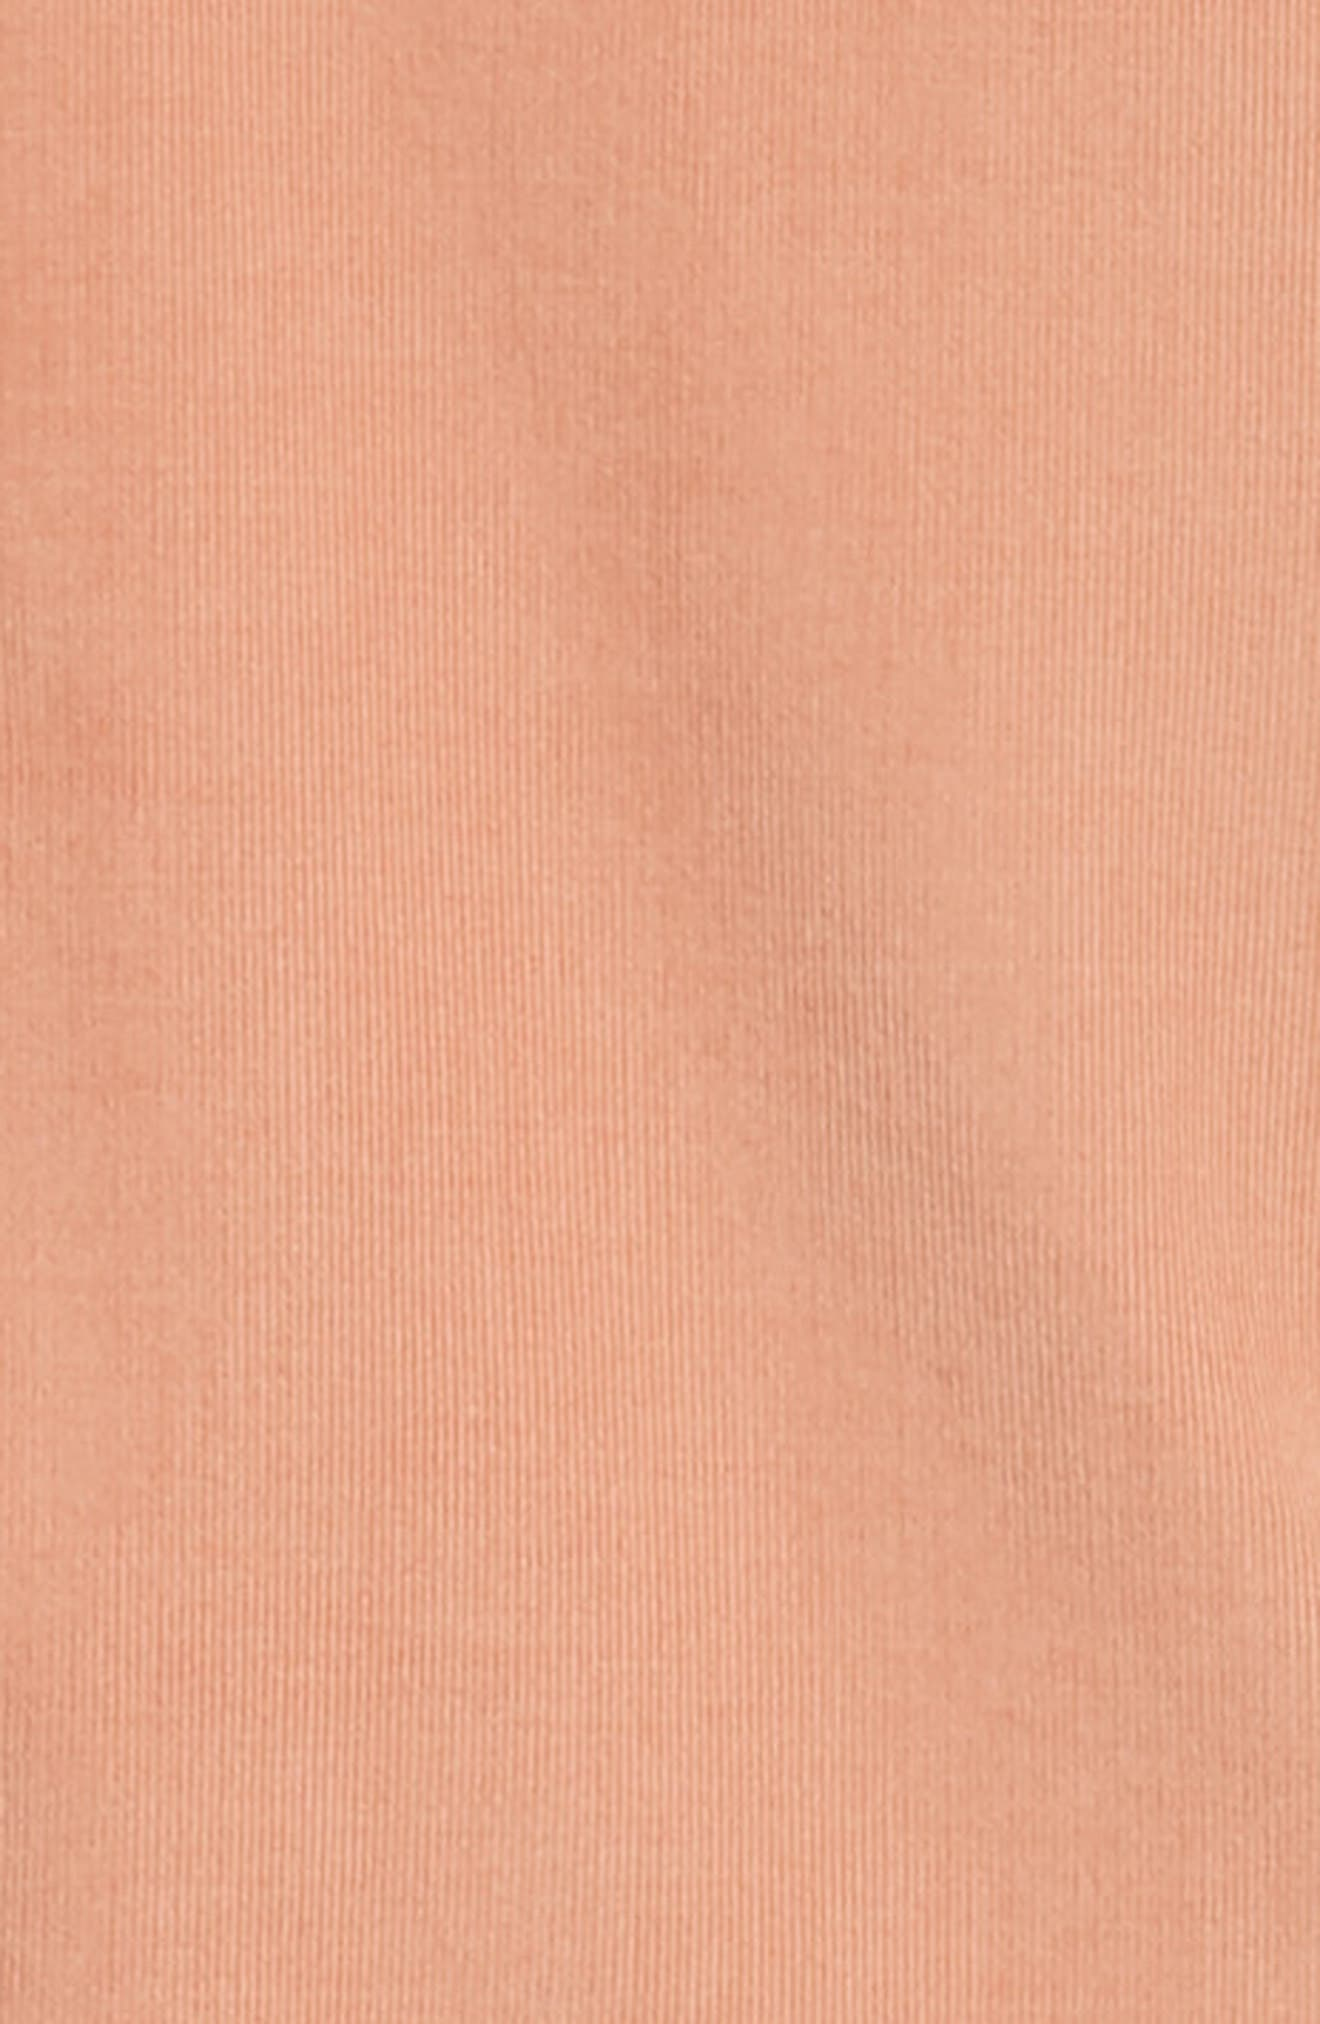 Regular Fit Corduroy Shirt,                             Alternate thumbnail 6, color,                             PINK